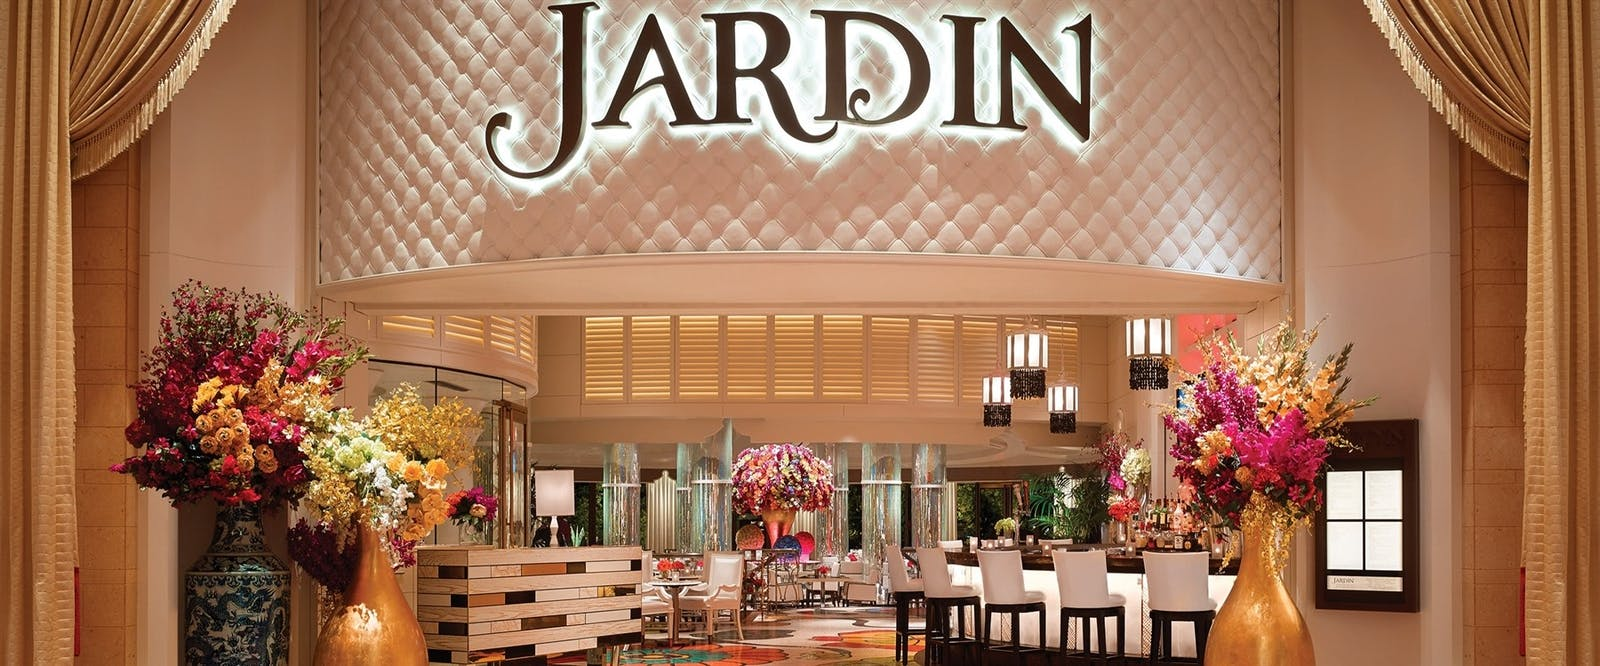 Jardin Restaurant at Encore At Wynn Las Vegas